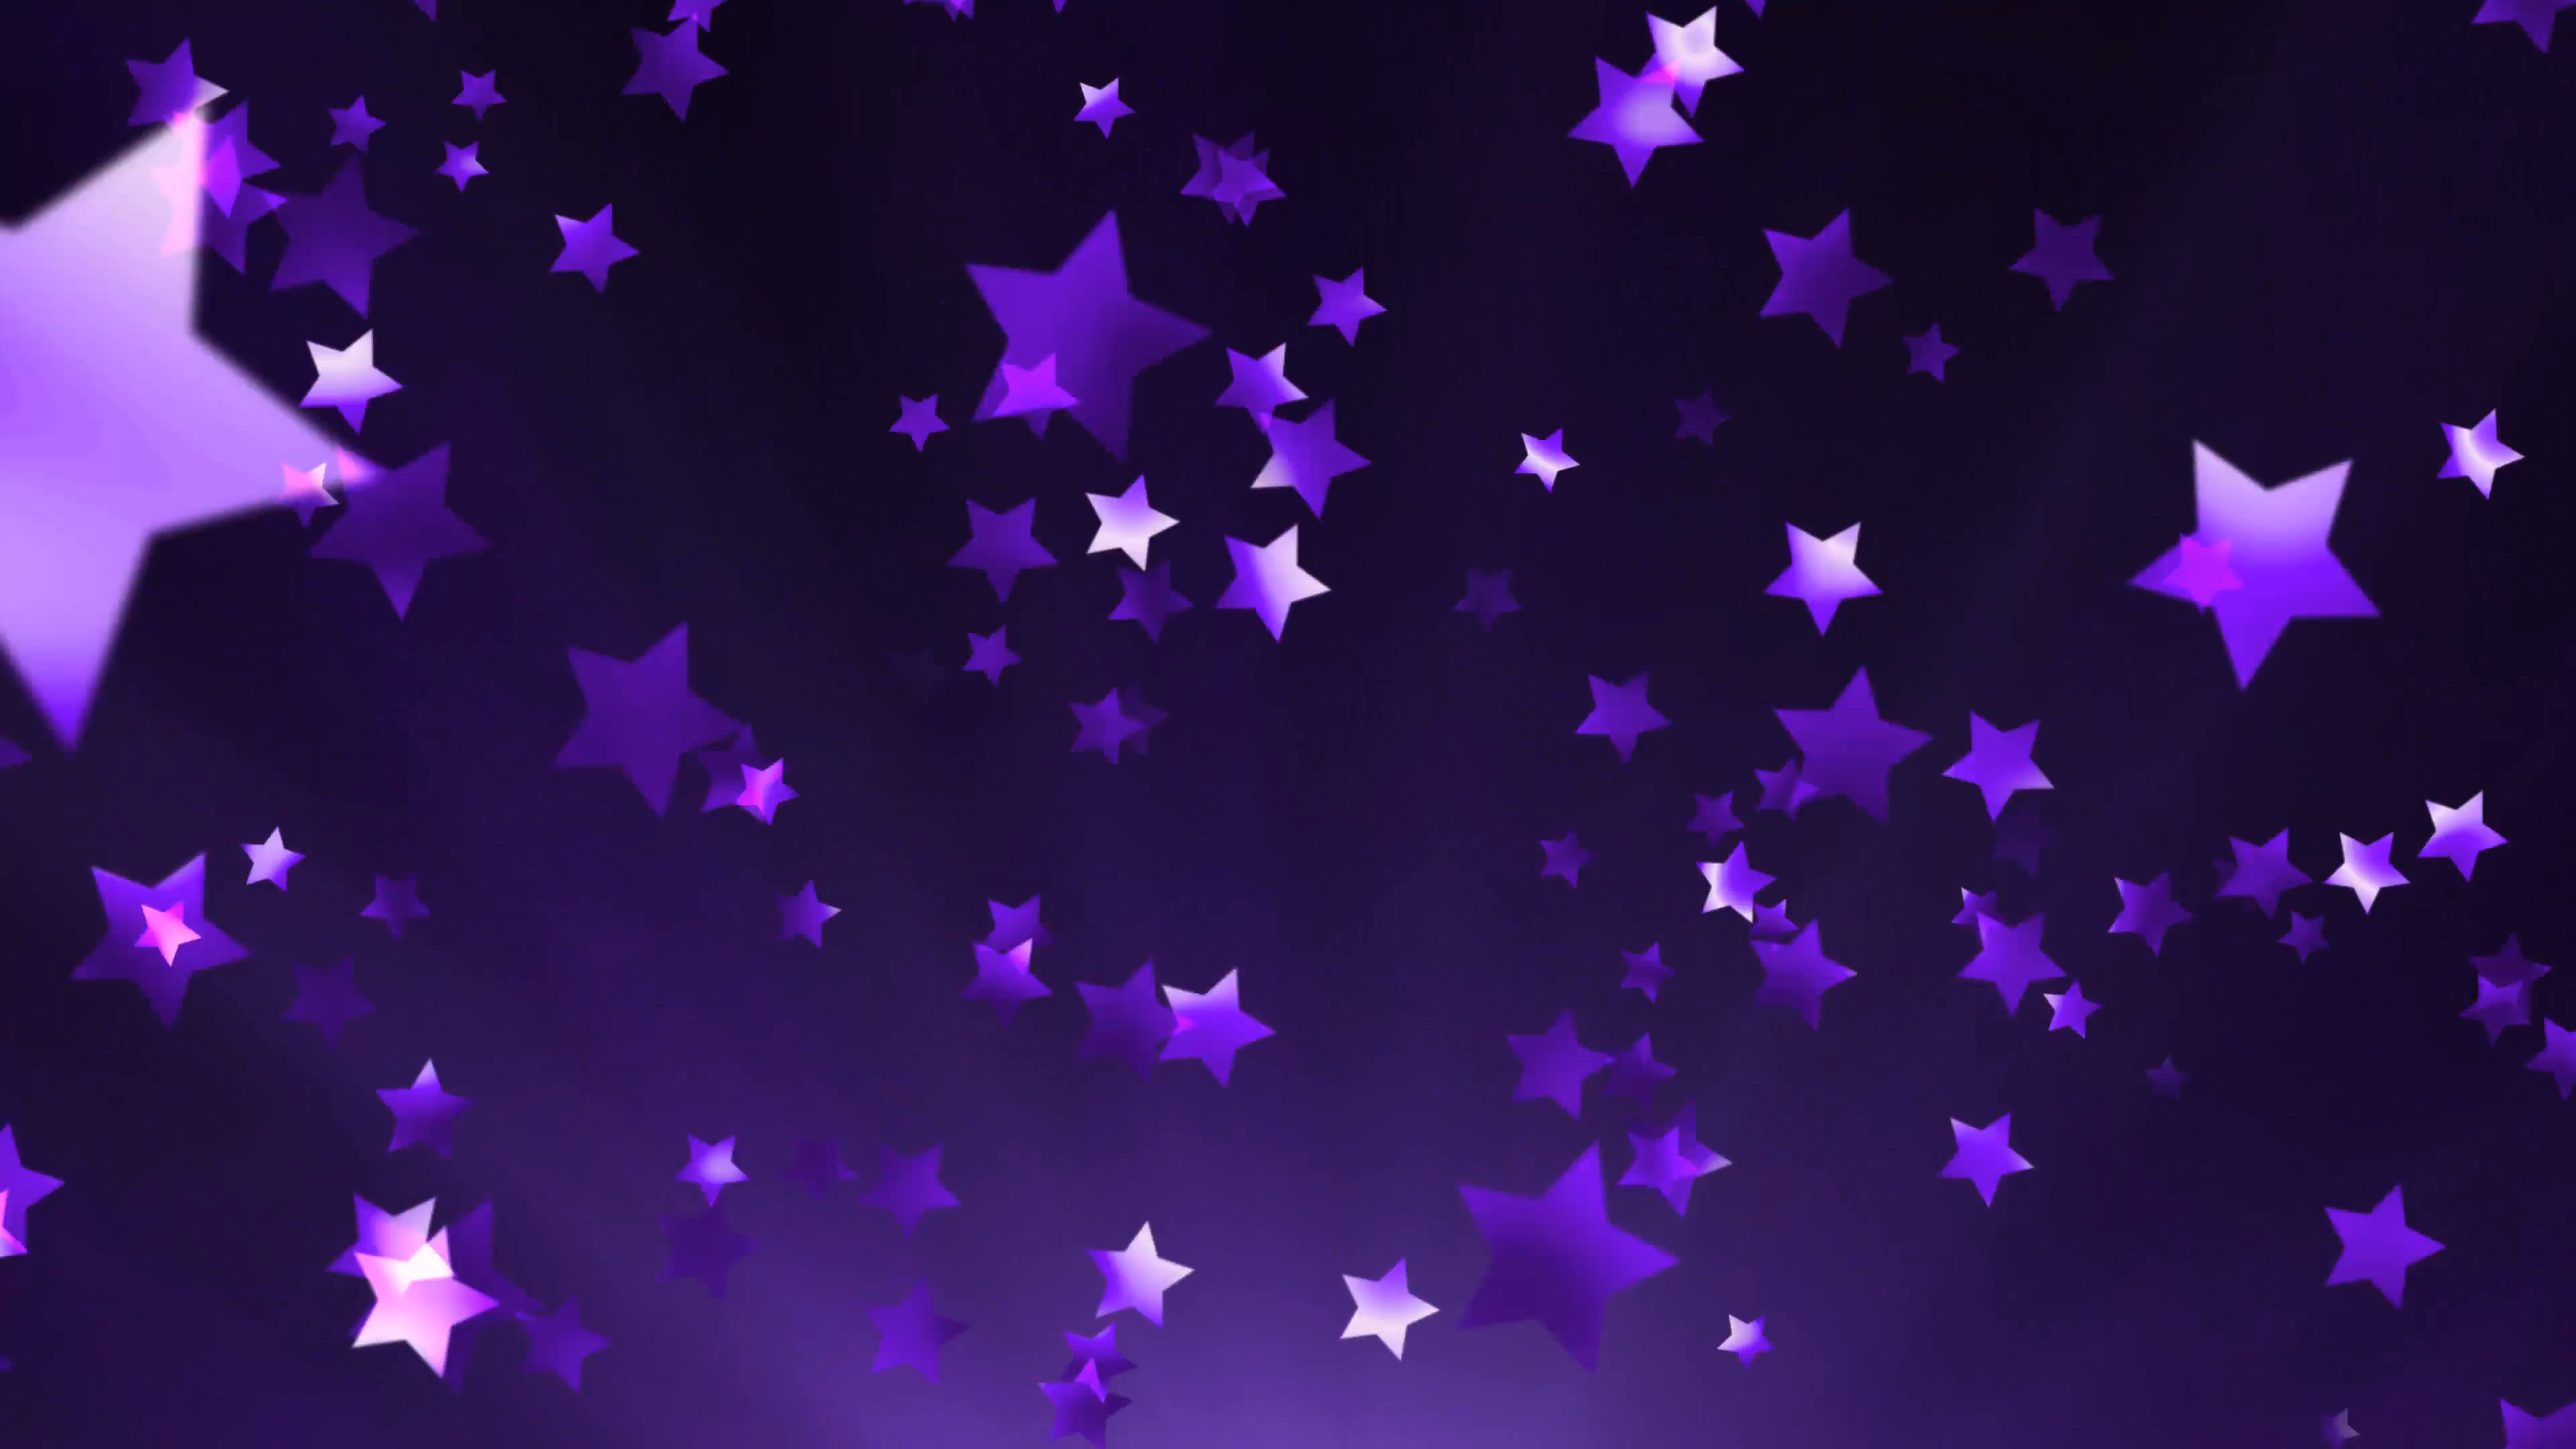 Dark Purple Background Images Free photo: Pur...